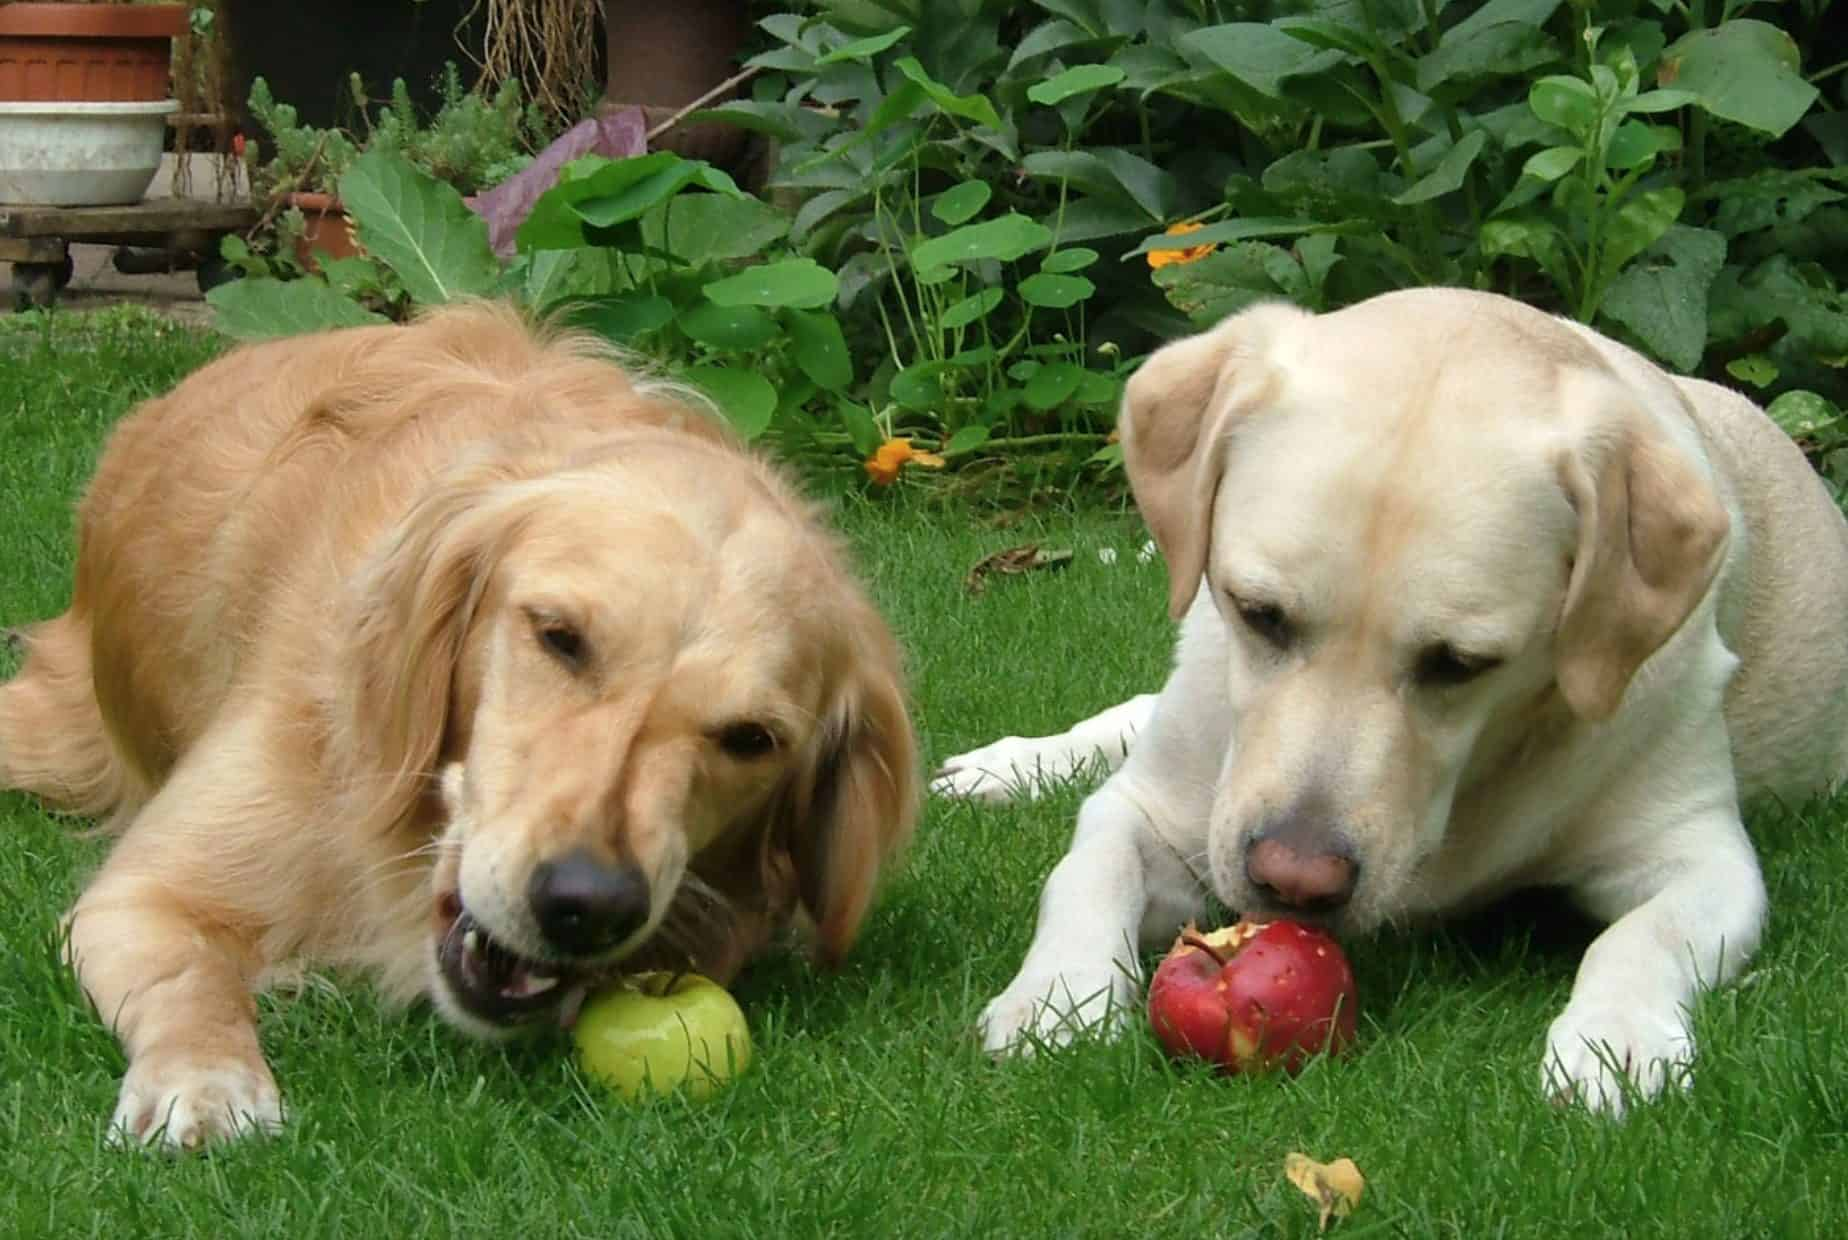 Giving a few apples for dogs can provide them with many health benefits.